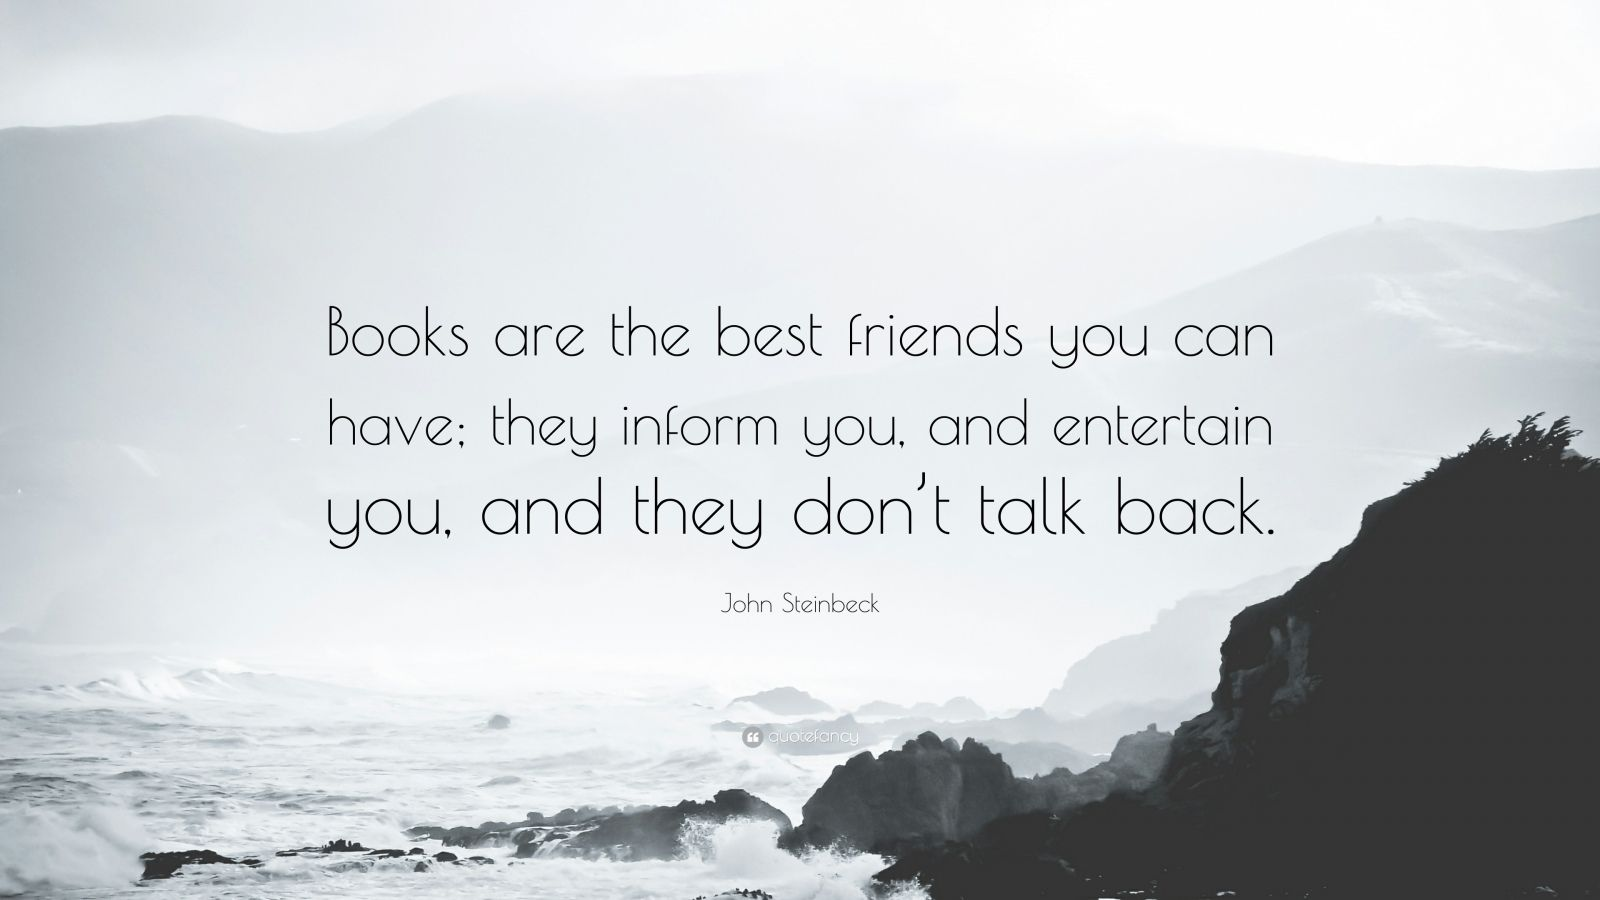 """John Steinbeck Quote: """"Books are the best friends you can have; they inform you, and entertain you, and they don't talk back."""""""